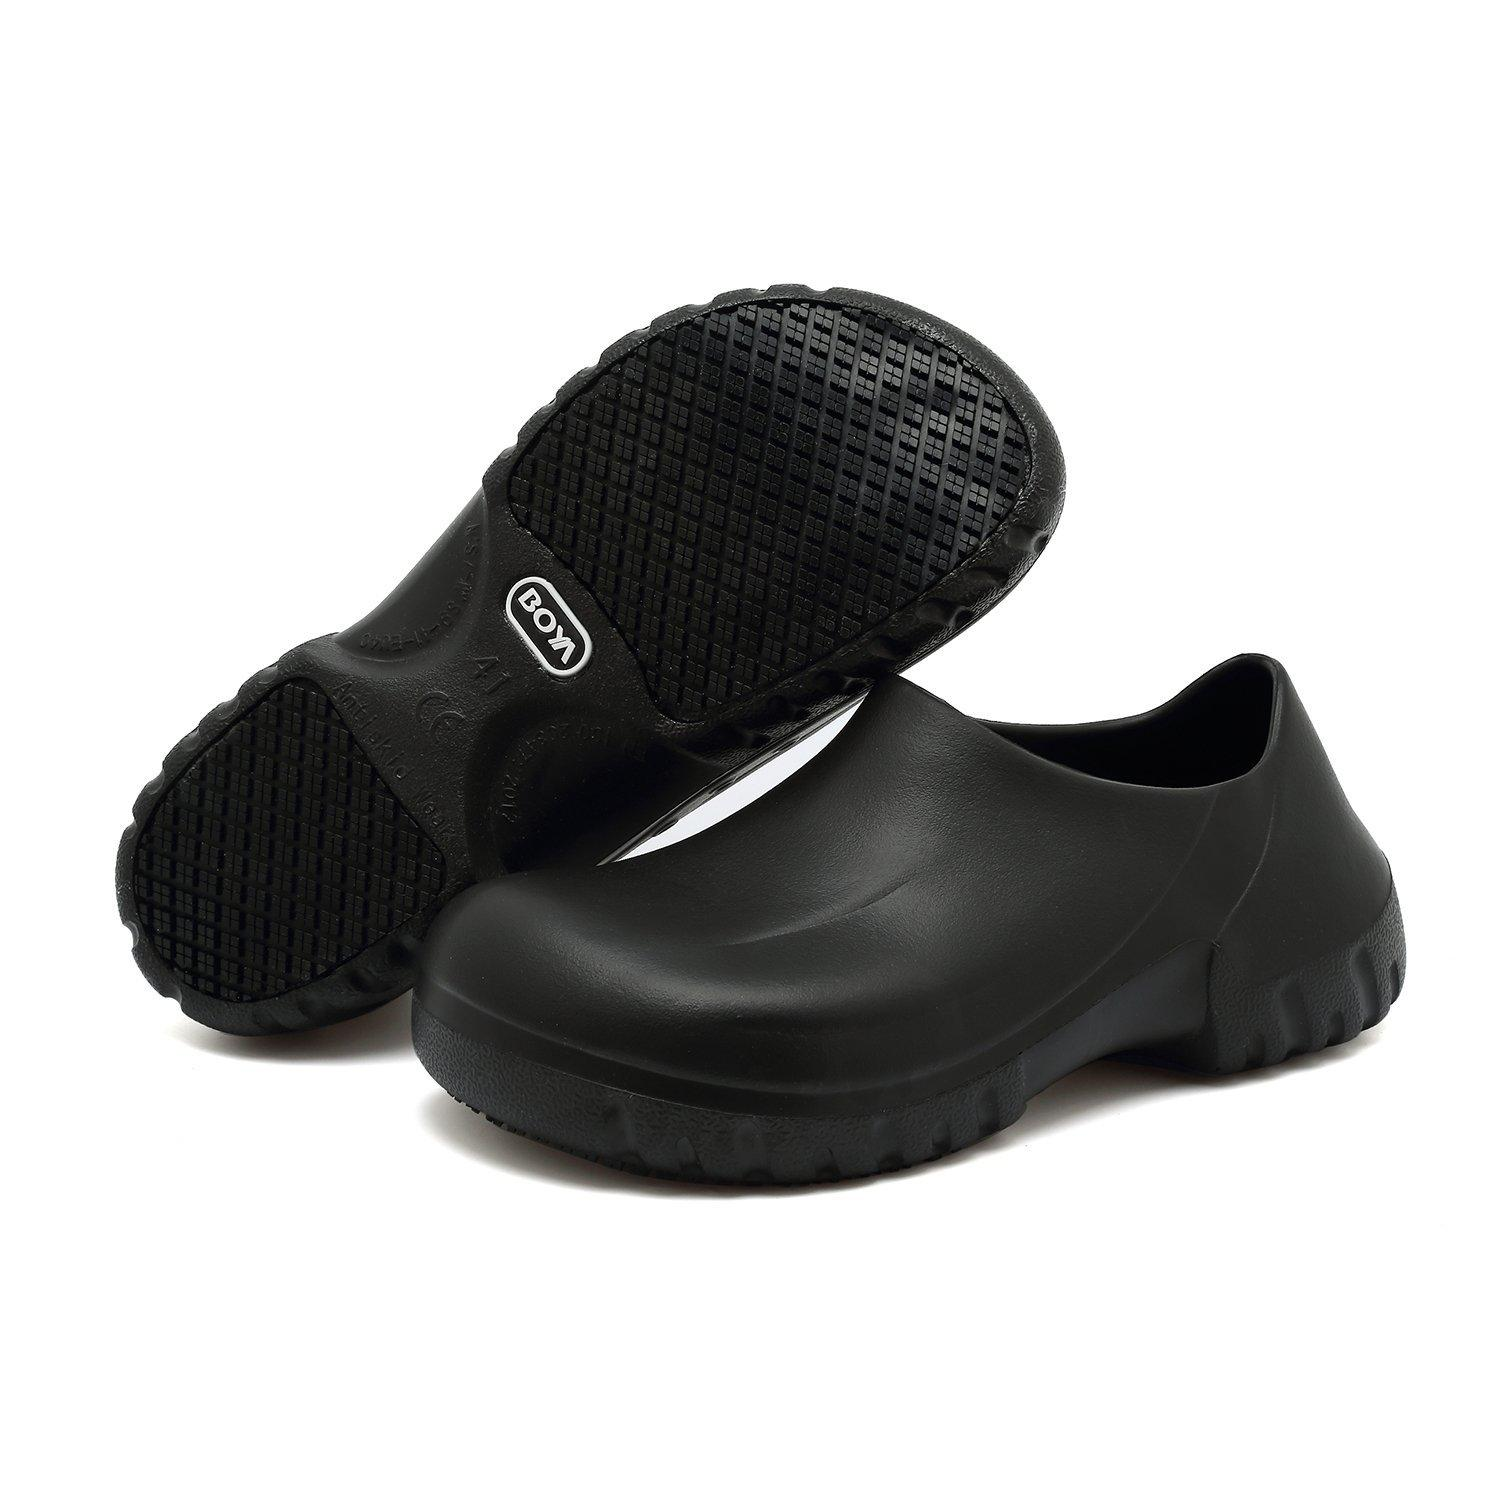 shoes for work in the kitchen concrete countertops 2019 slip resistant women men black non nurse chef on from henty 46 23 dhgate com